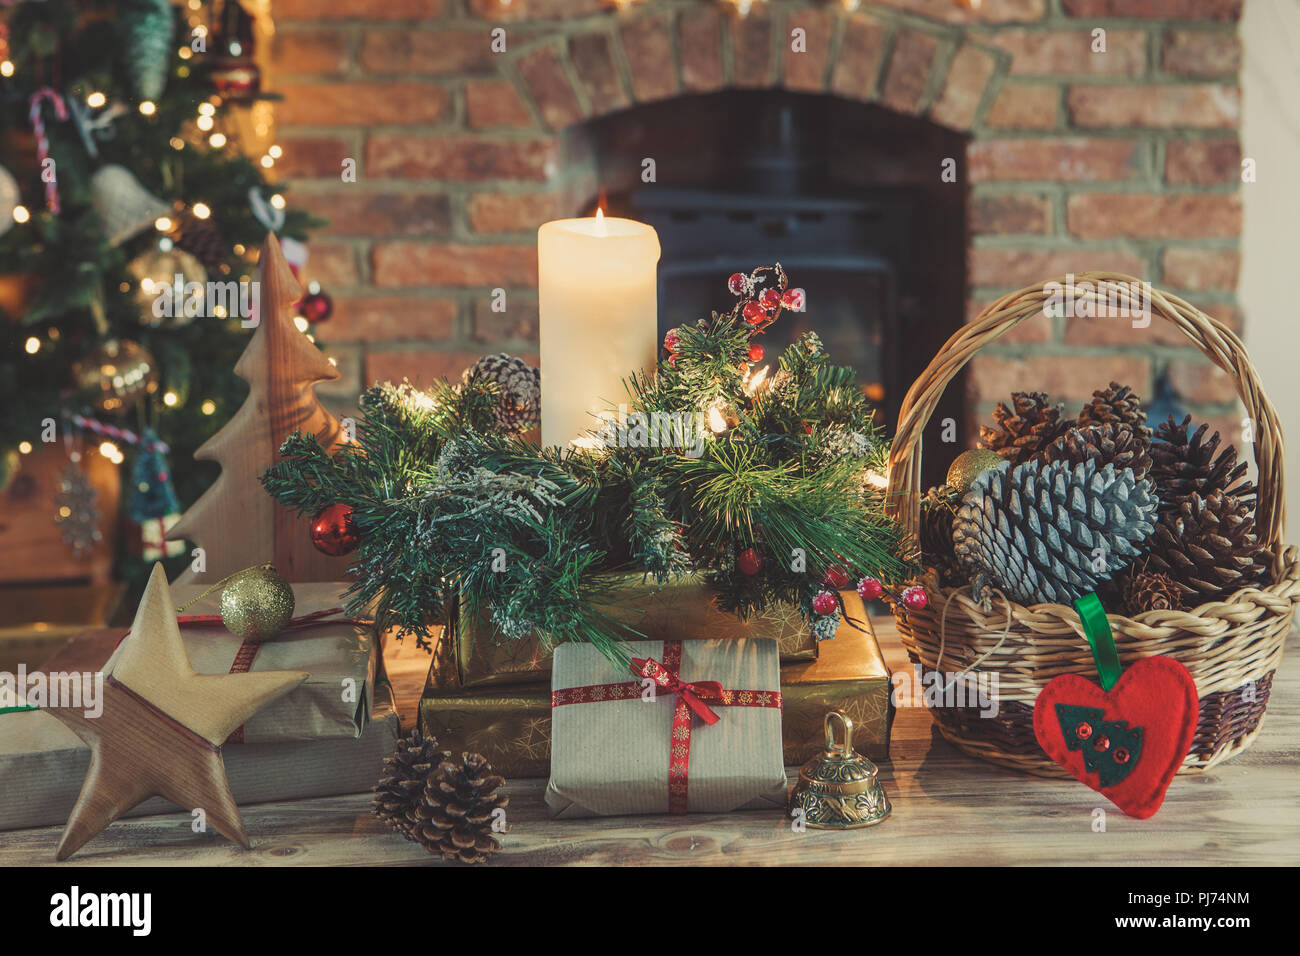 christmas scene presents and decorations on the table in front of the fireplace with woodburner lit up christmas tree with baubles and ornaments and